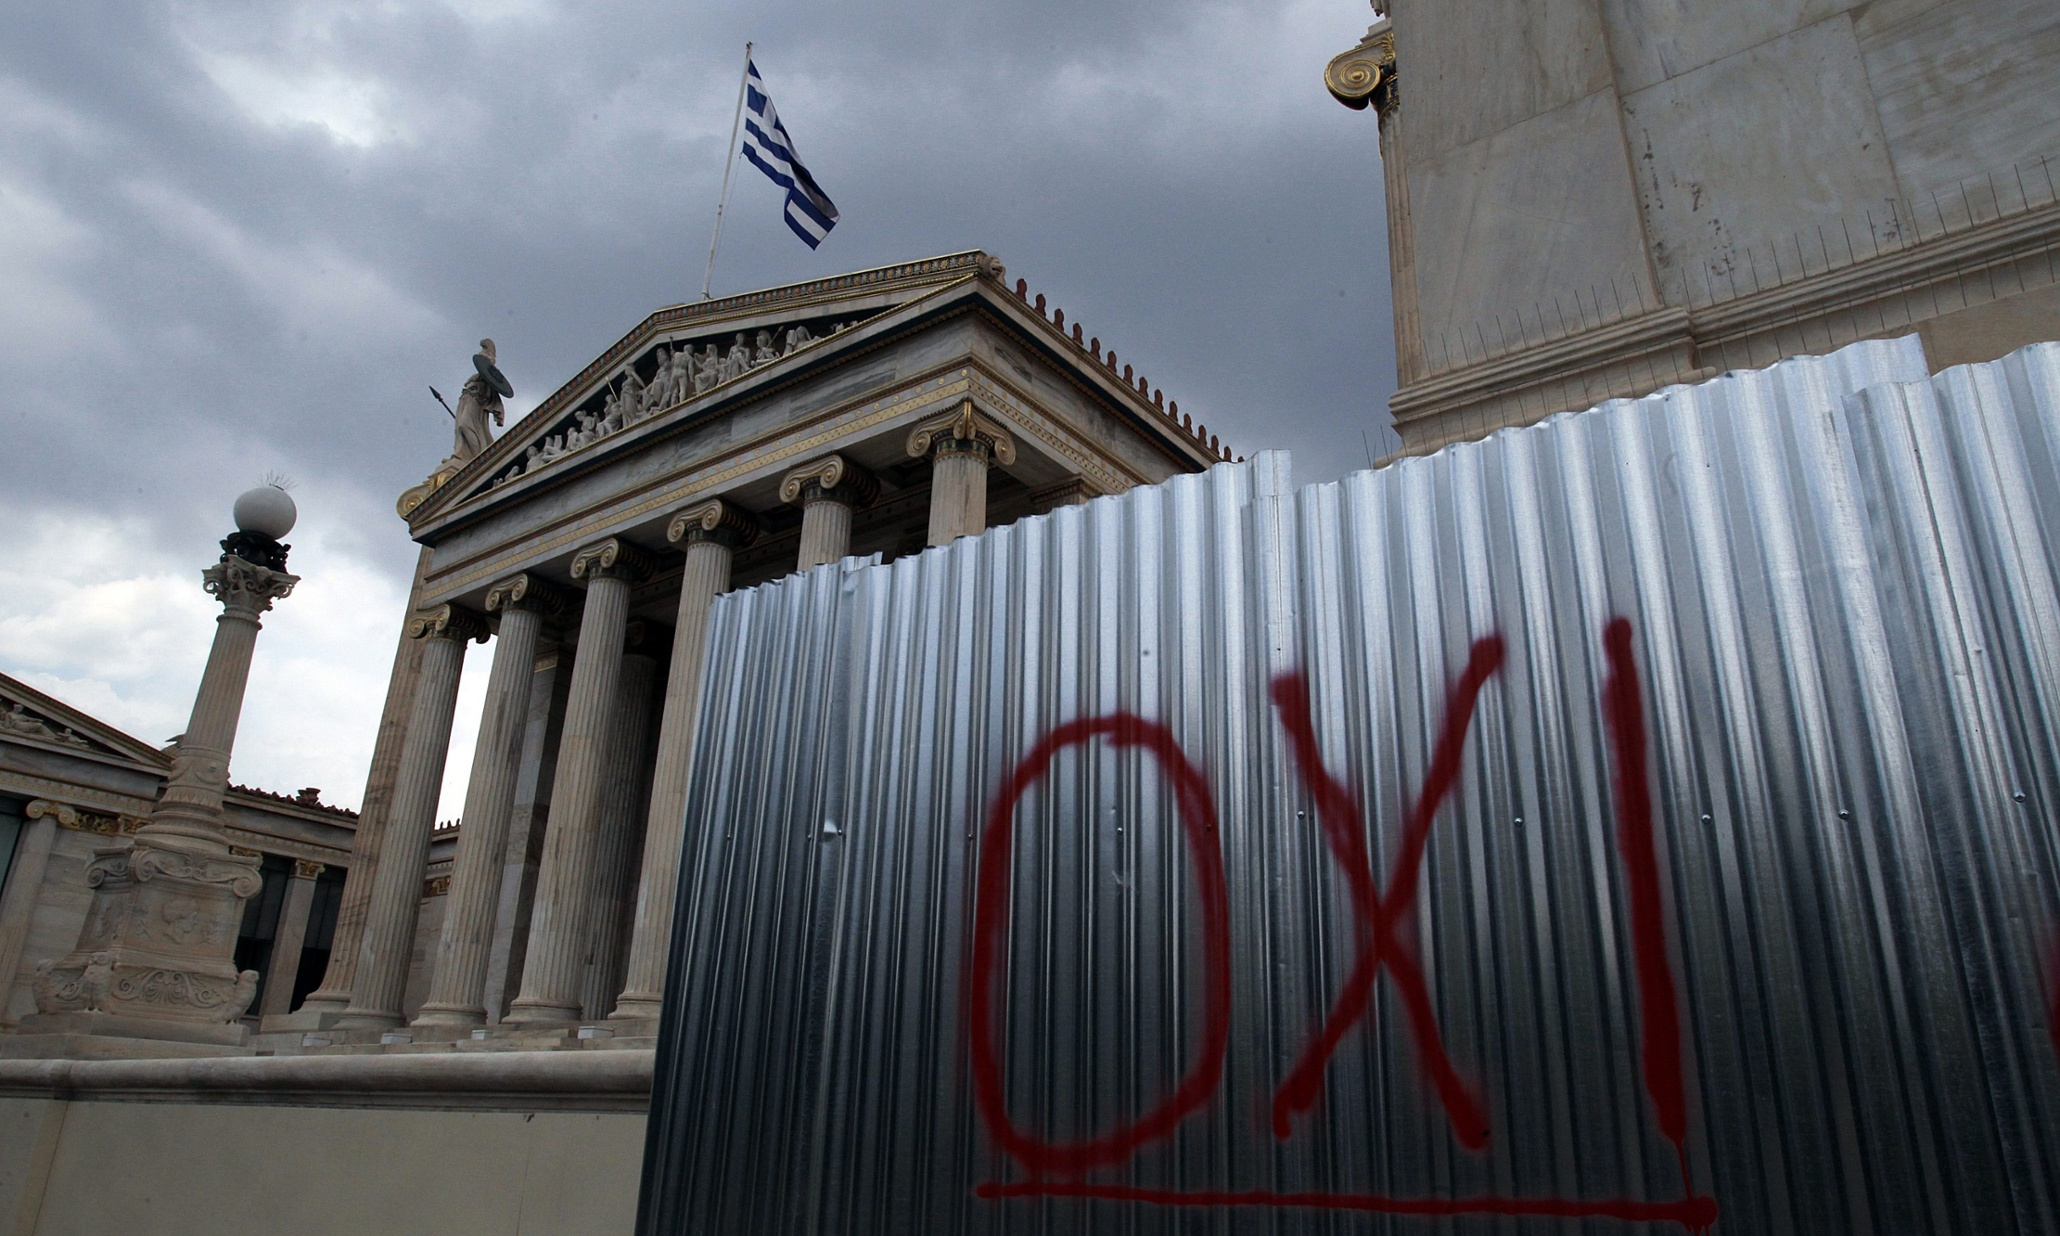 IMF: austerity measures would still leave Greece with unsustainable debt